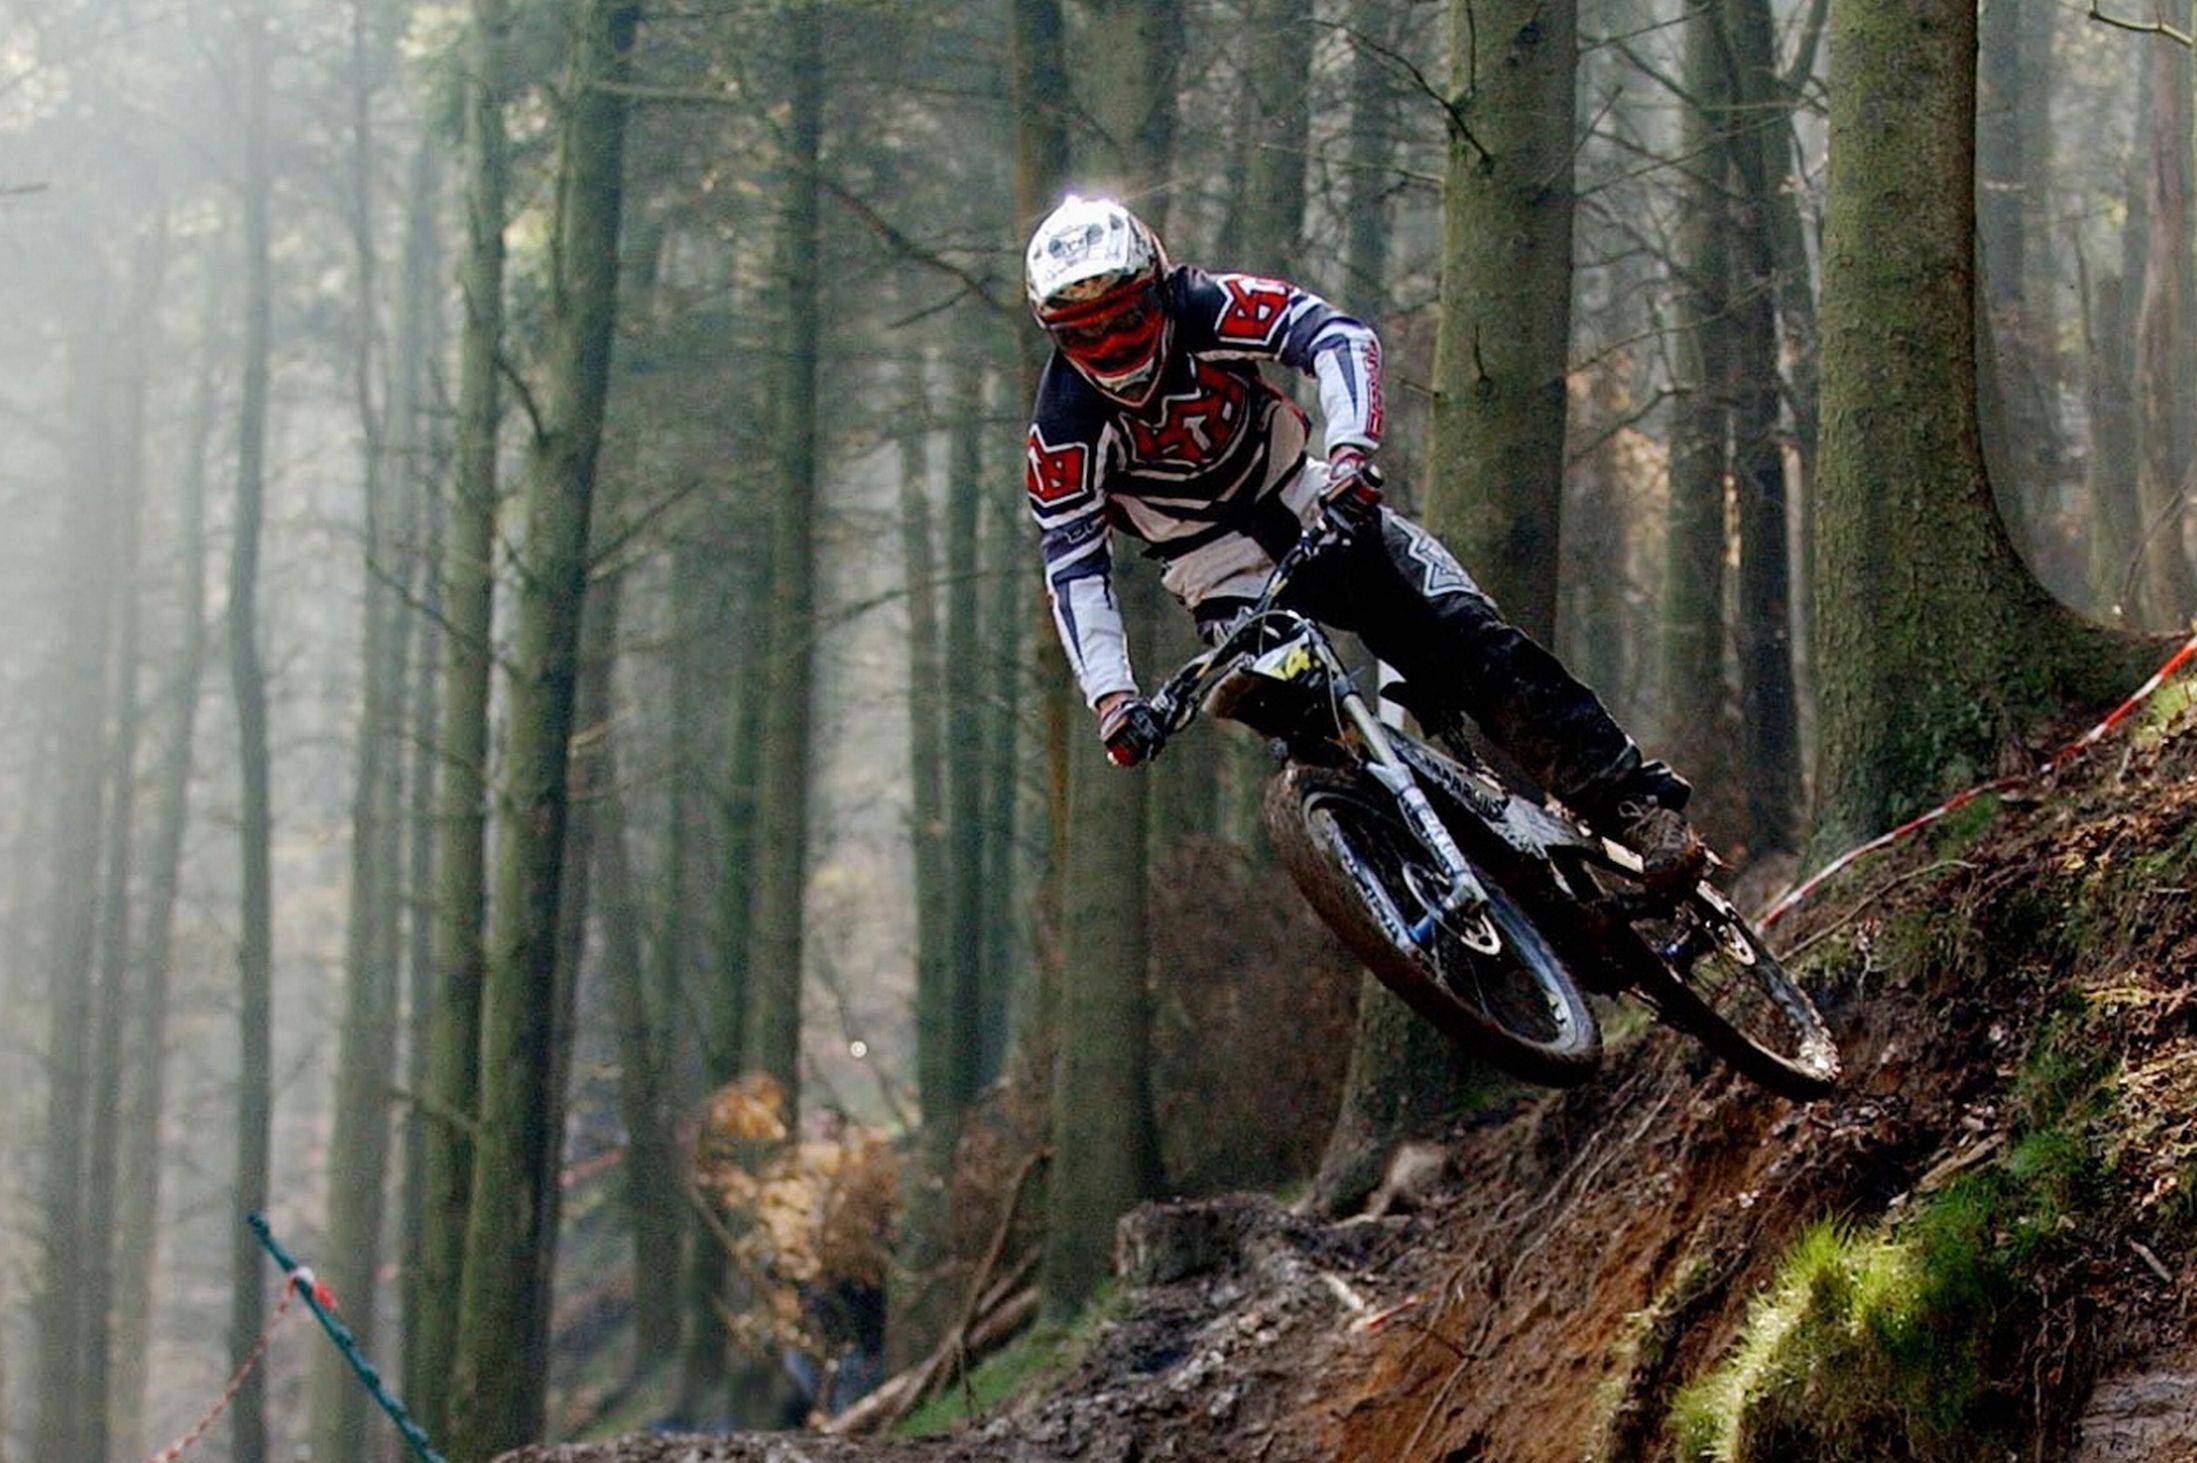 A new survey puts three Welsh sites among the top four mountain bike trails in Britain